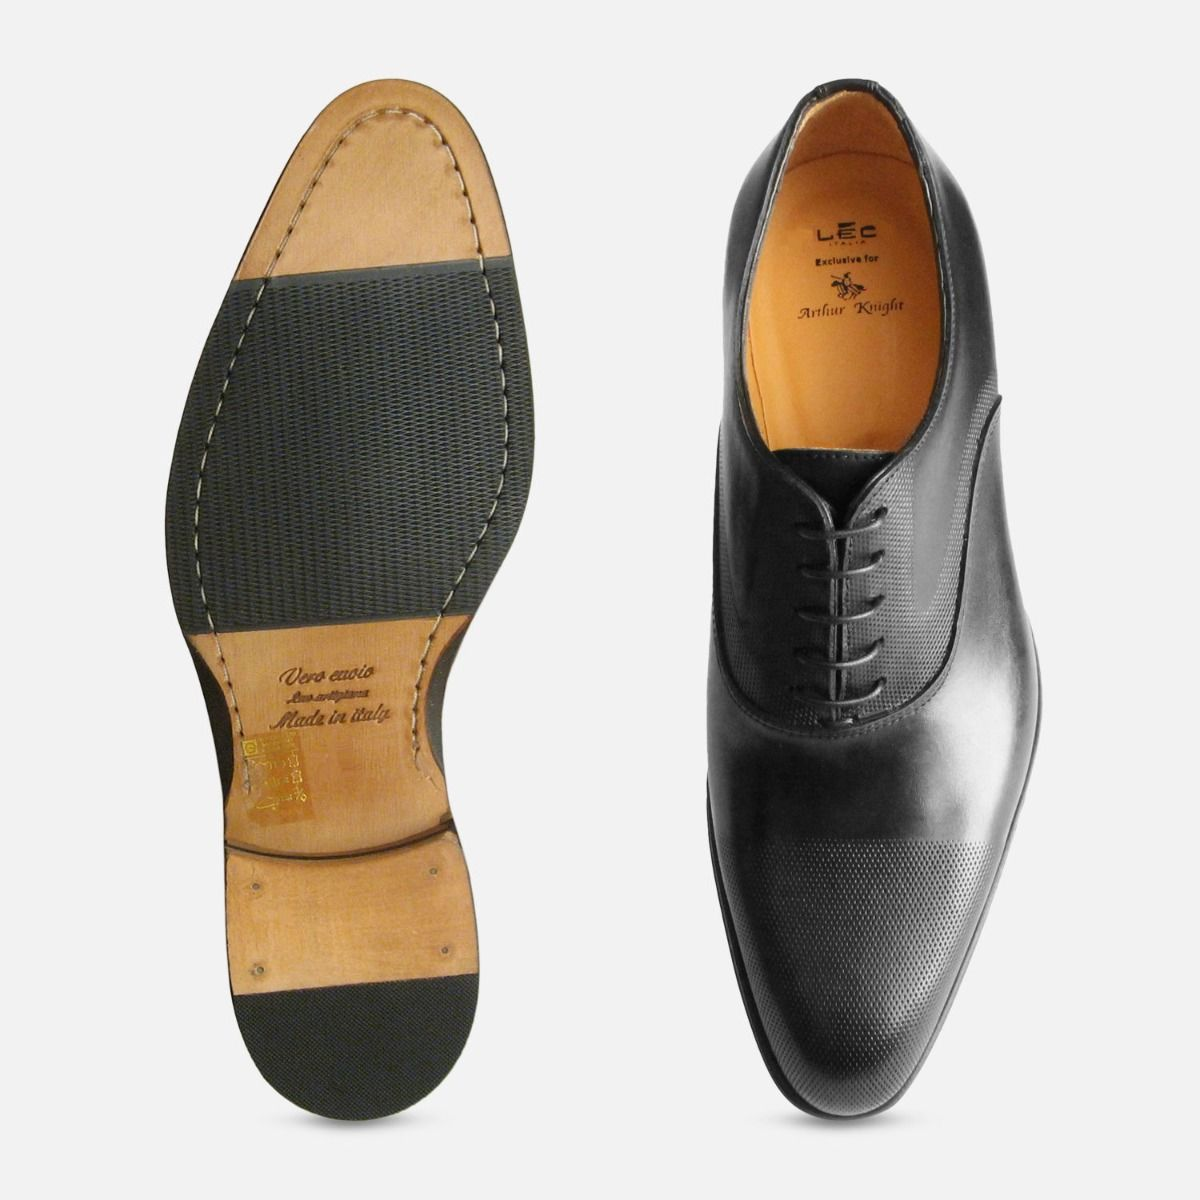 Executive Black Oxford with Punched Cap Made in Italy